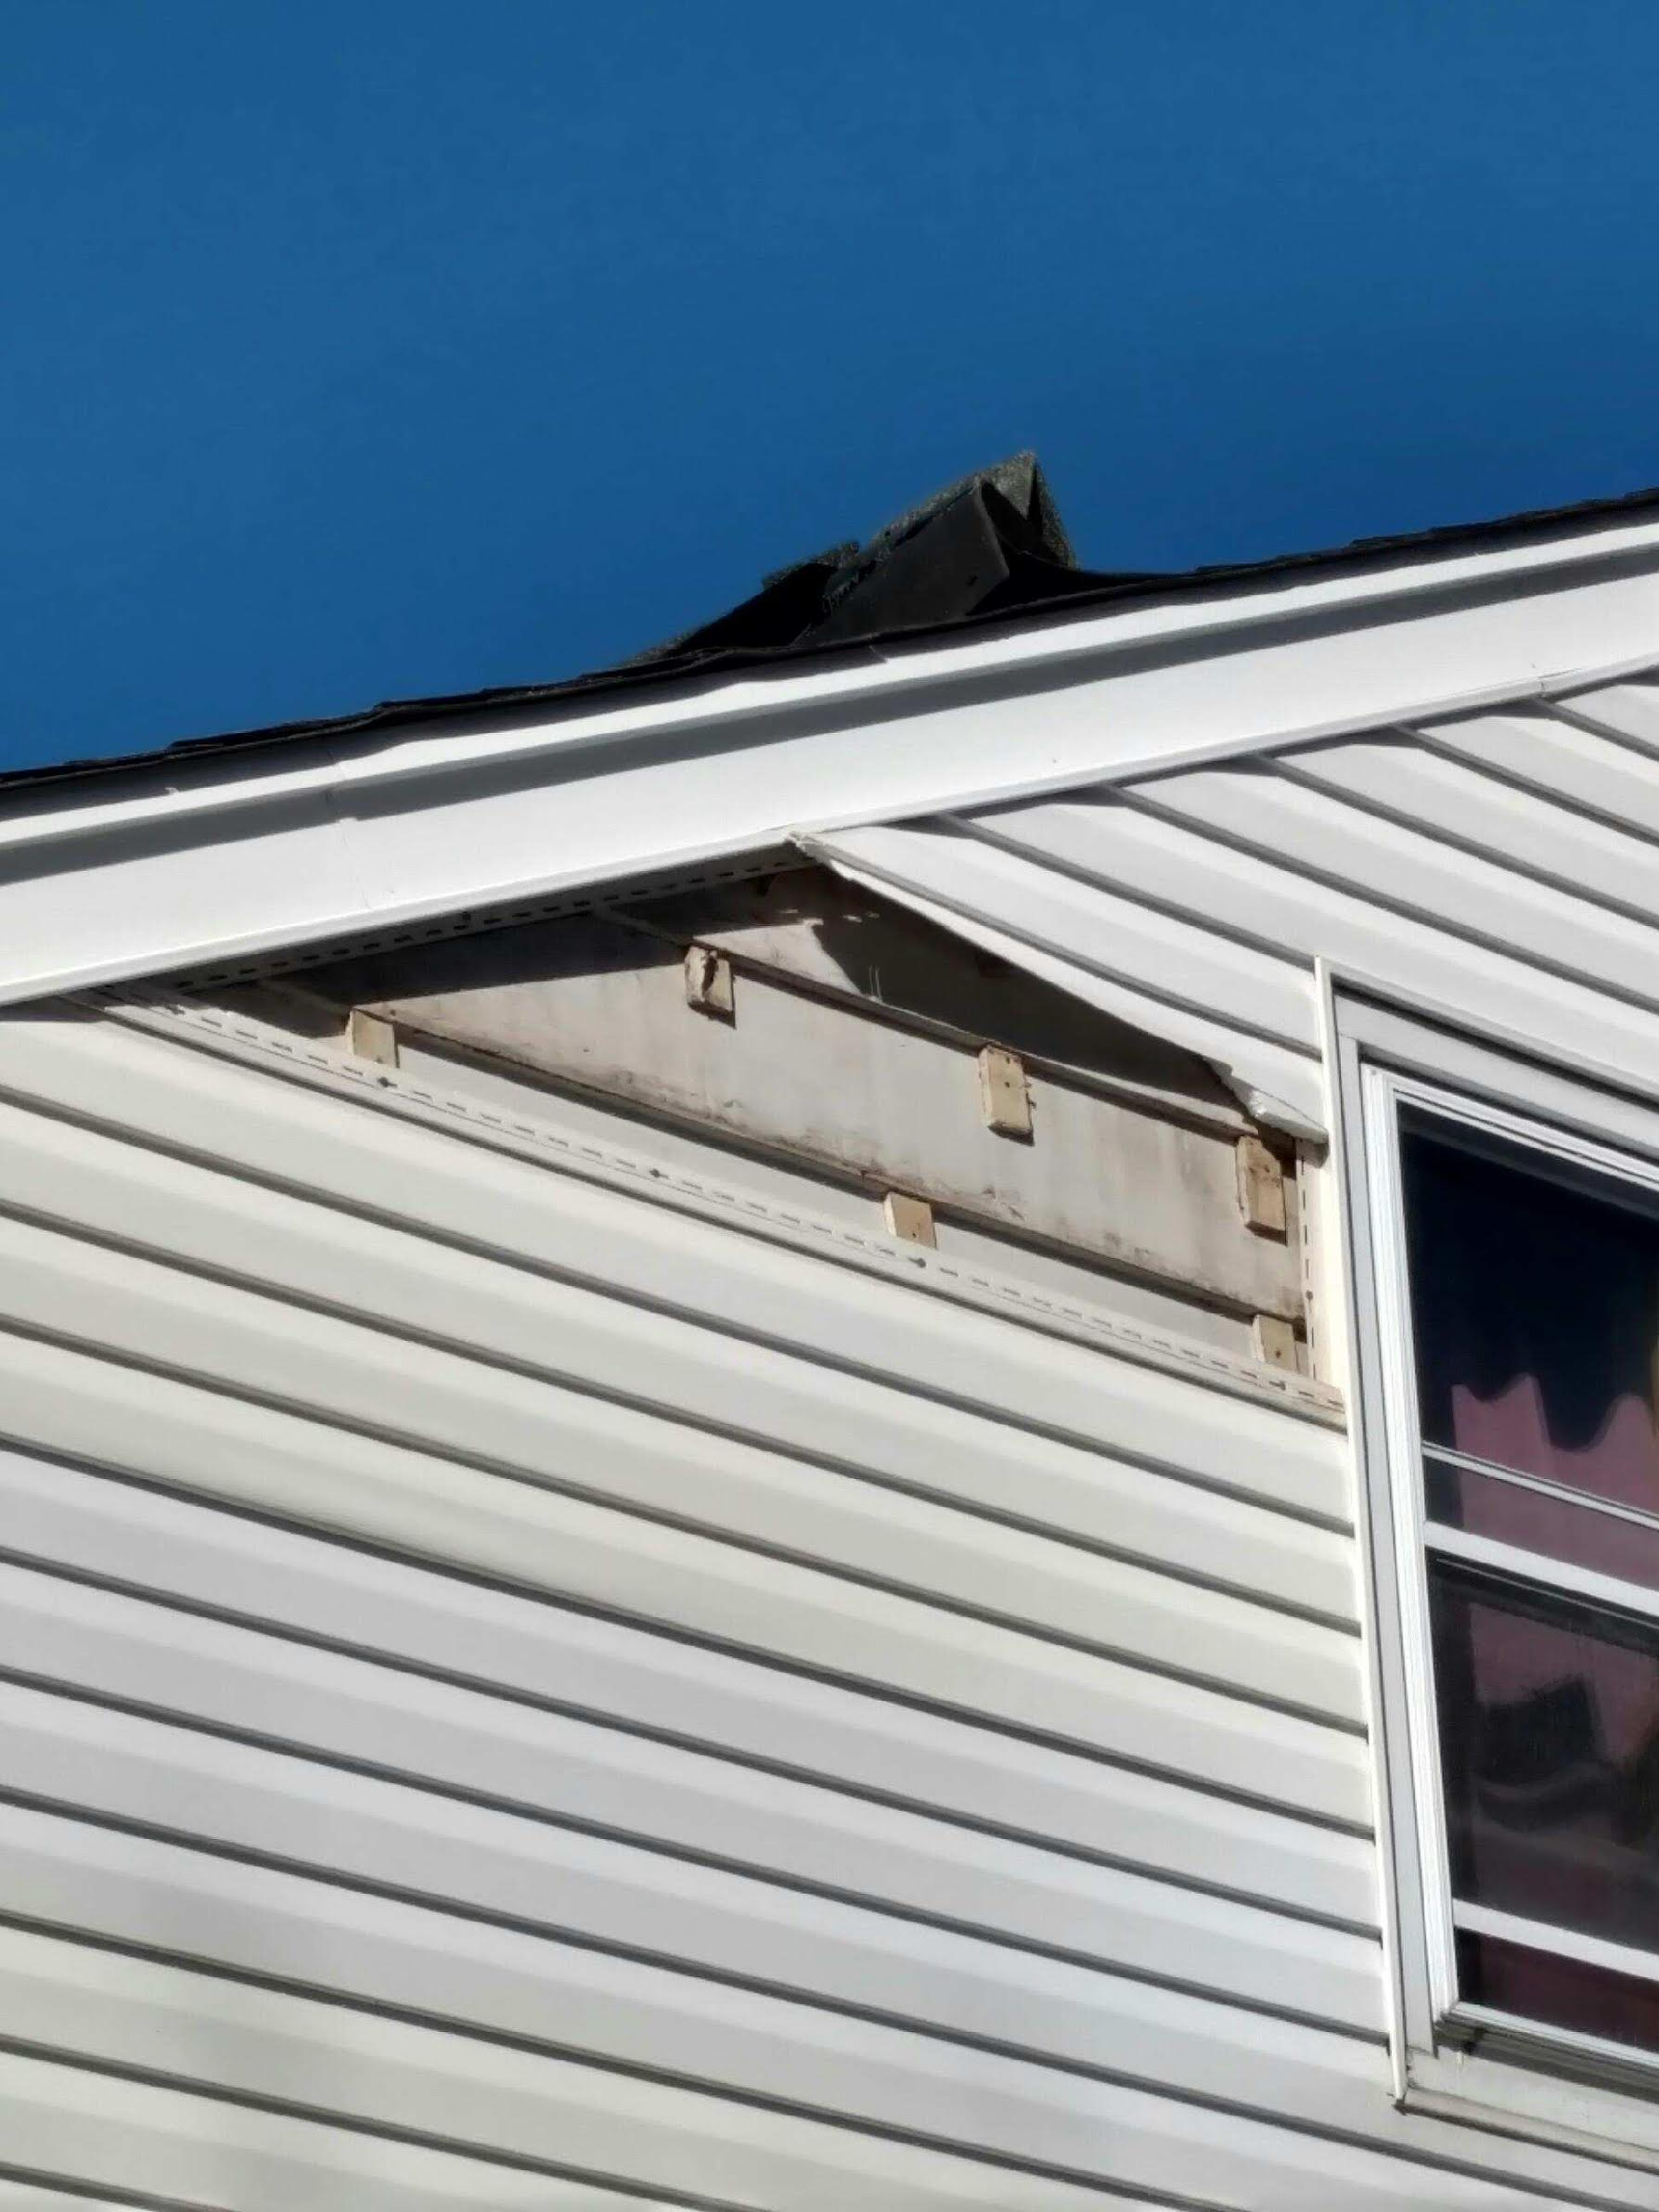 Common signs of wind damaged siding include: Missing, Torn, Broken, Dented or Hanging pieces and Debris from siding material, including fascia, soffit, and gutters.